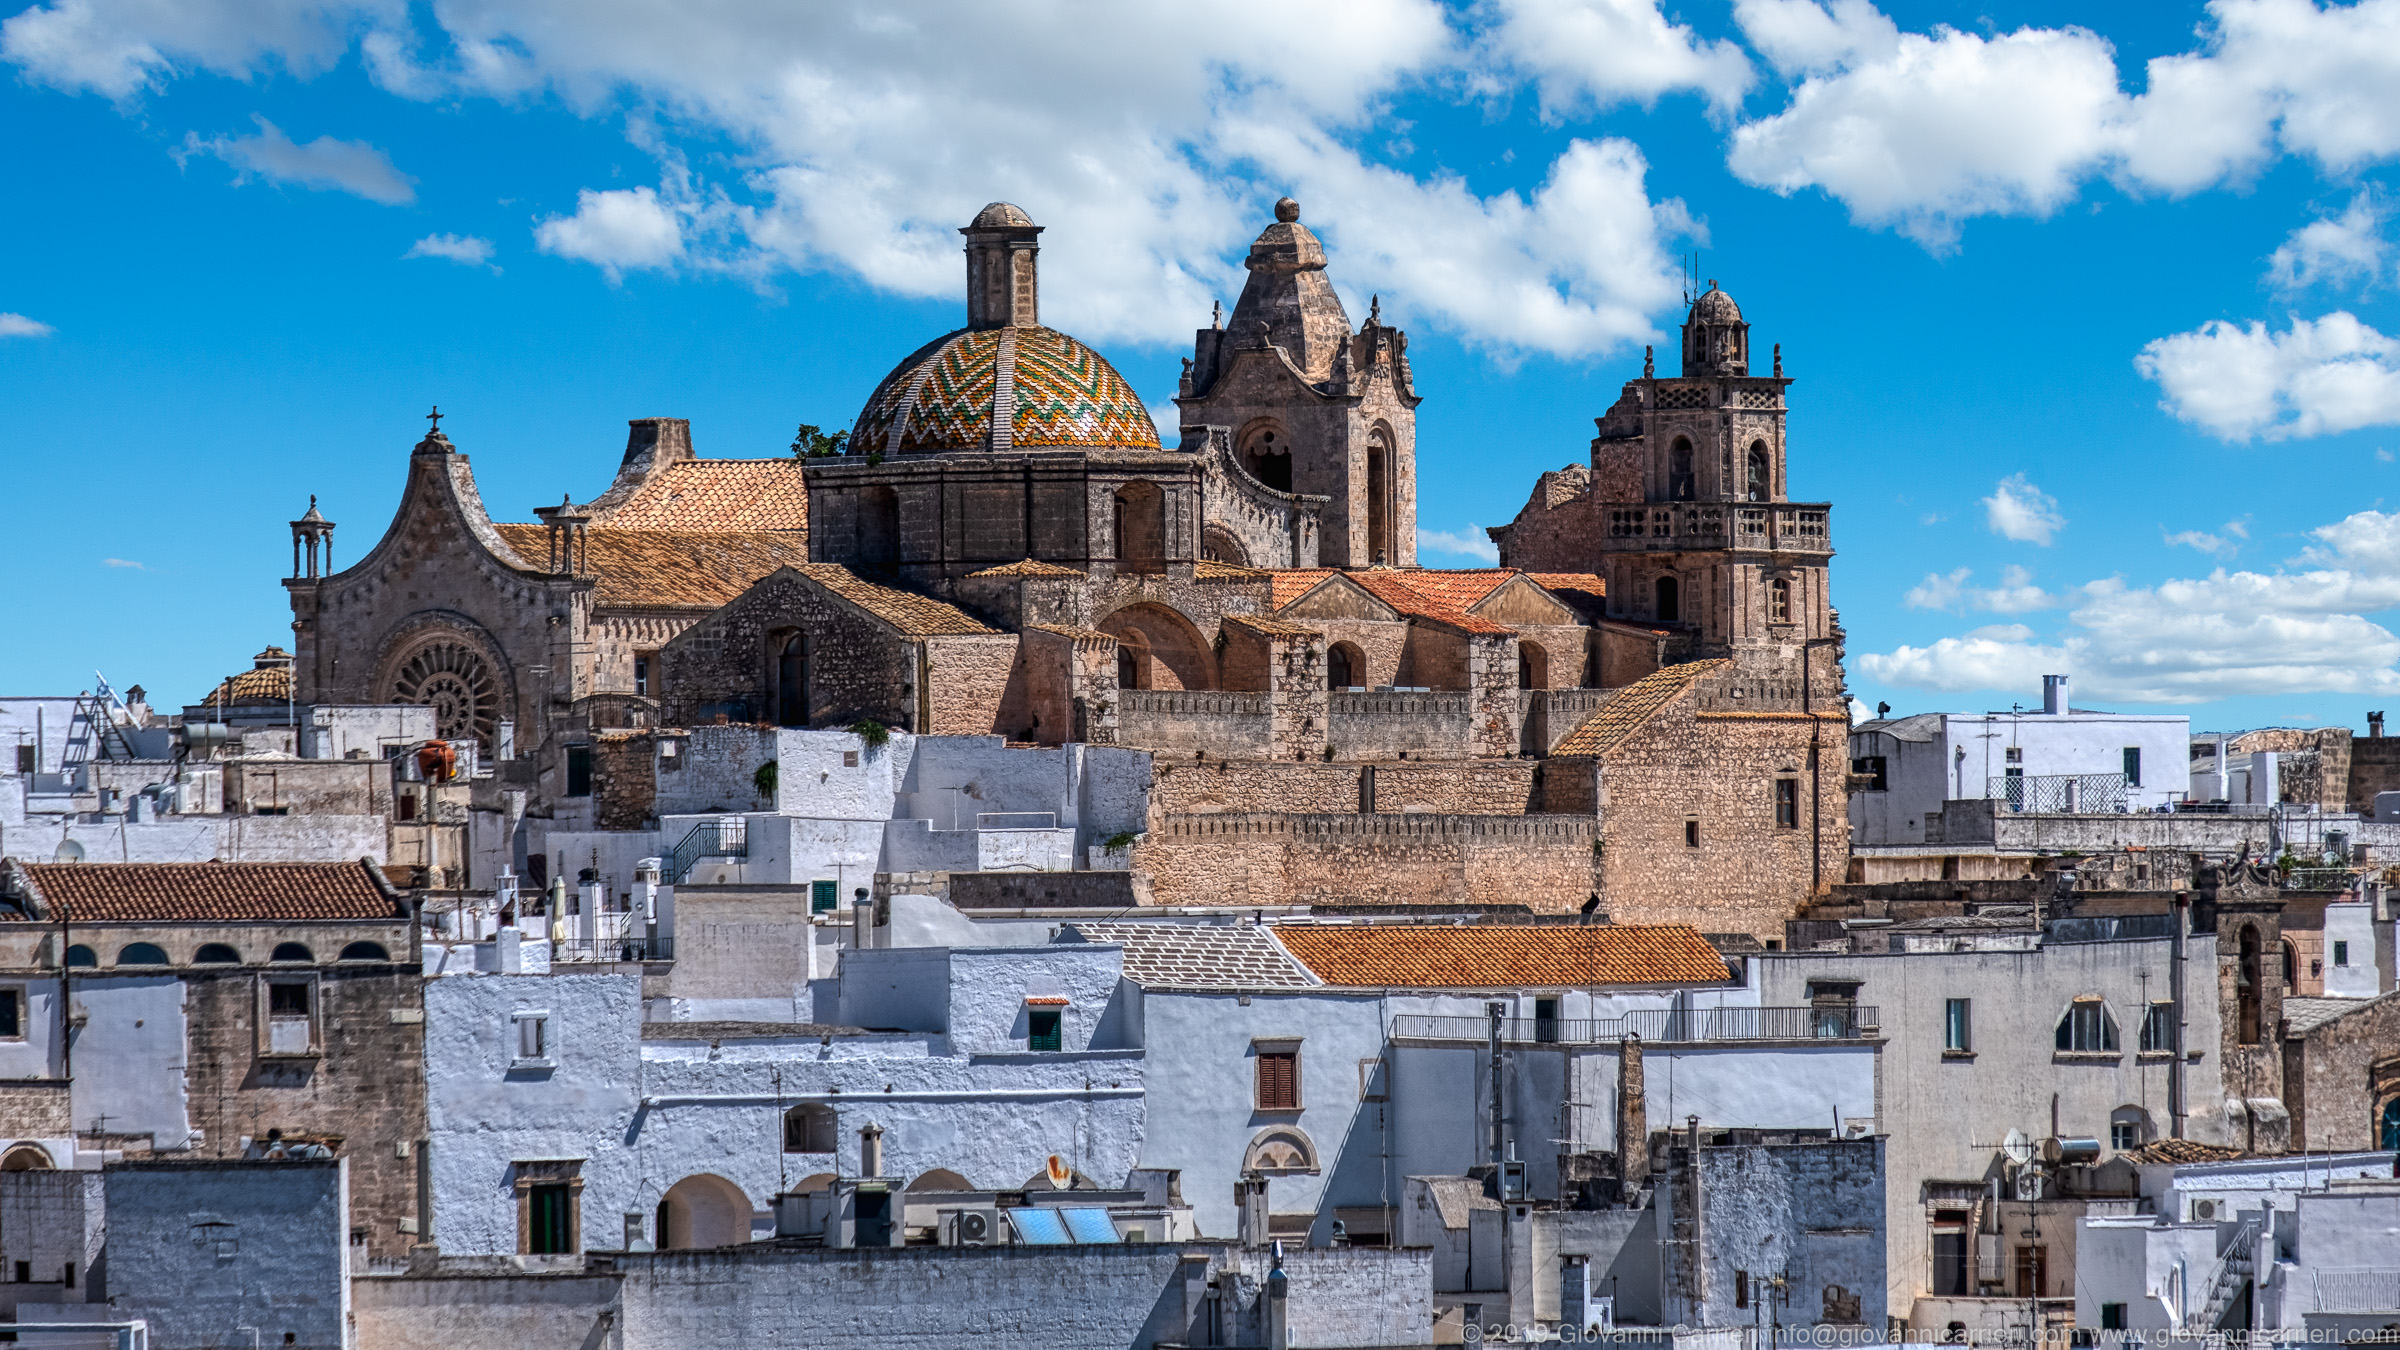 Special view of the Ostuni Cathedral